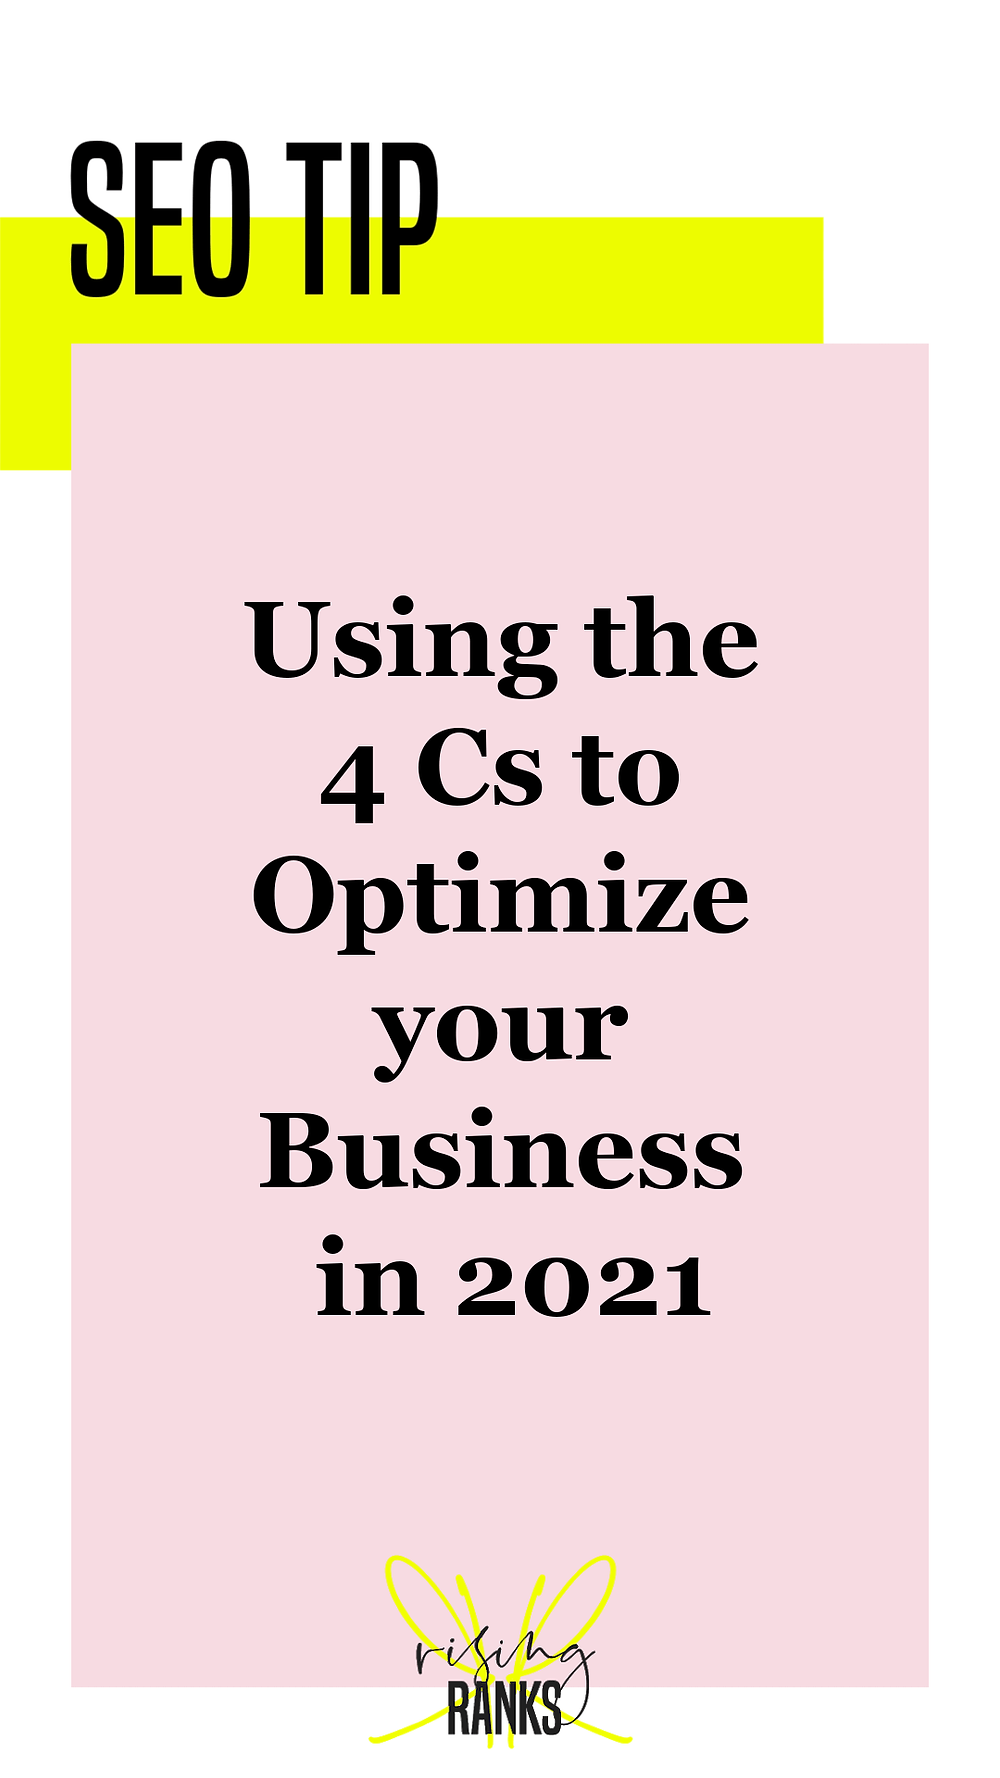 optimize your business for 2021